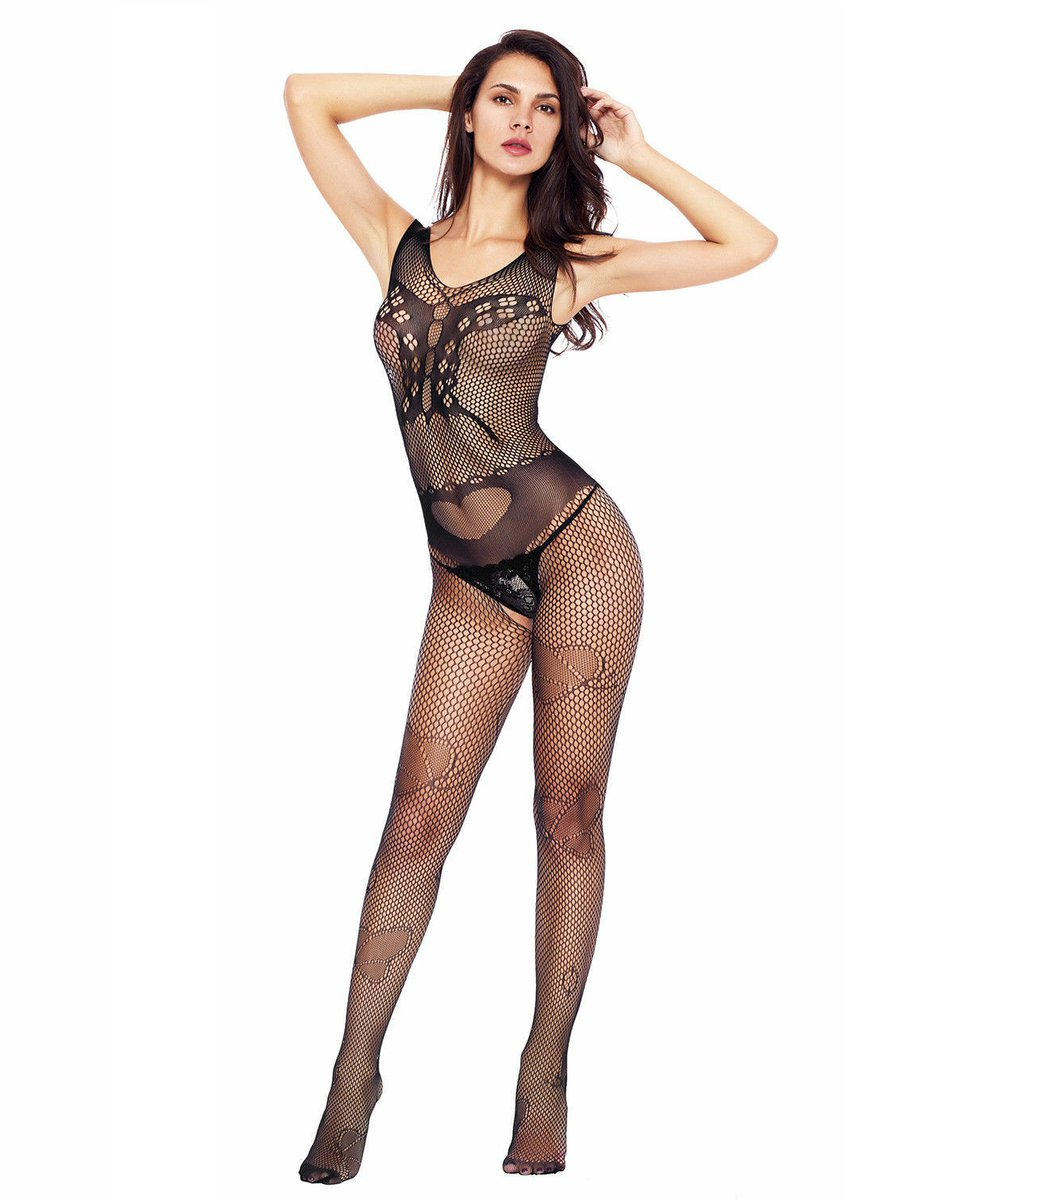 NEW Butterfly Accent Fishnet Bodystocking!  Make yourself feel irresistible with our new Butterfly Accent Fishnet Bodystocking! You'll turn heads in this sassy bodystocking that leave little to the imagination.   UK SIZE 6 TO 14 NOW: £5.99  #bodystocking #bodysuit #body #lingeriepic.twitter.com/oZ6lcp15Z2